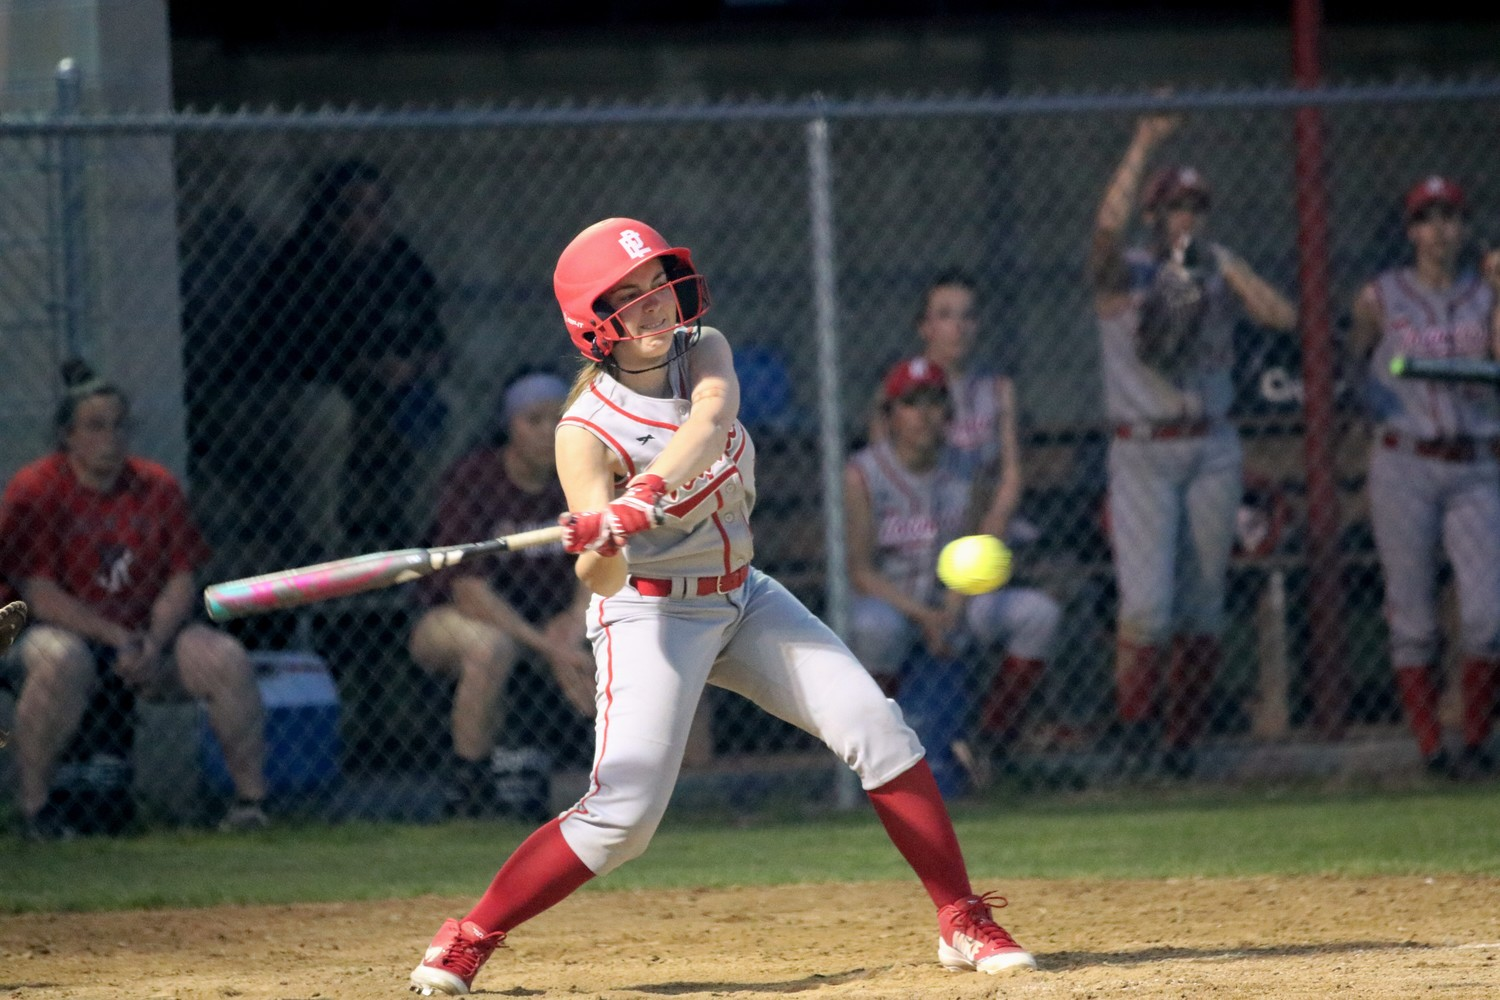 Amaya Dacier at bat for the Townies in recent game vs Woonsocket